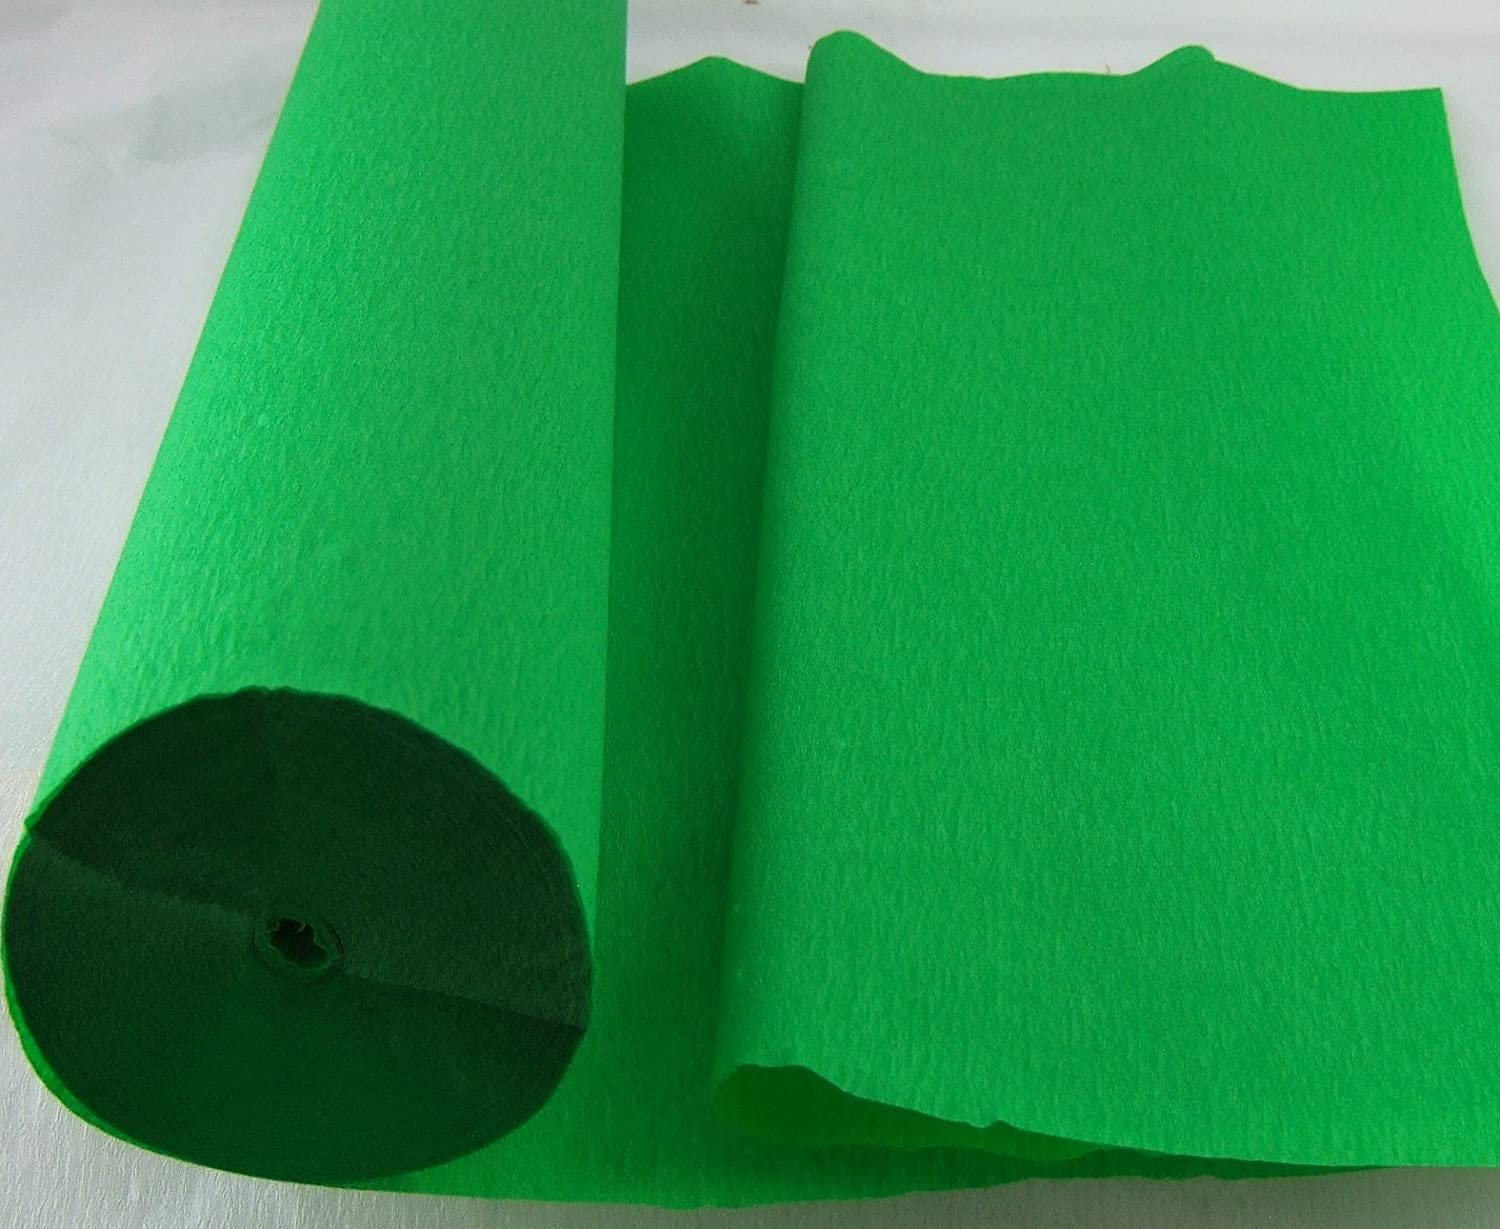 1 Light Green - Jumbo 26 Metre Crepe Paper Roll. 50cm x 26metres long Many uses as decorations, marketing tools, great favourite with schools and the craft industry Clikkabox Crepe C60V